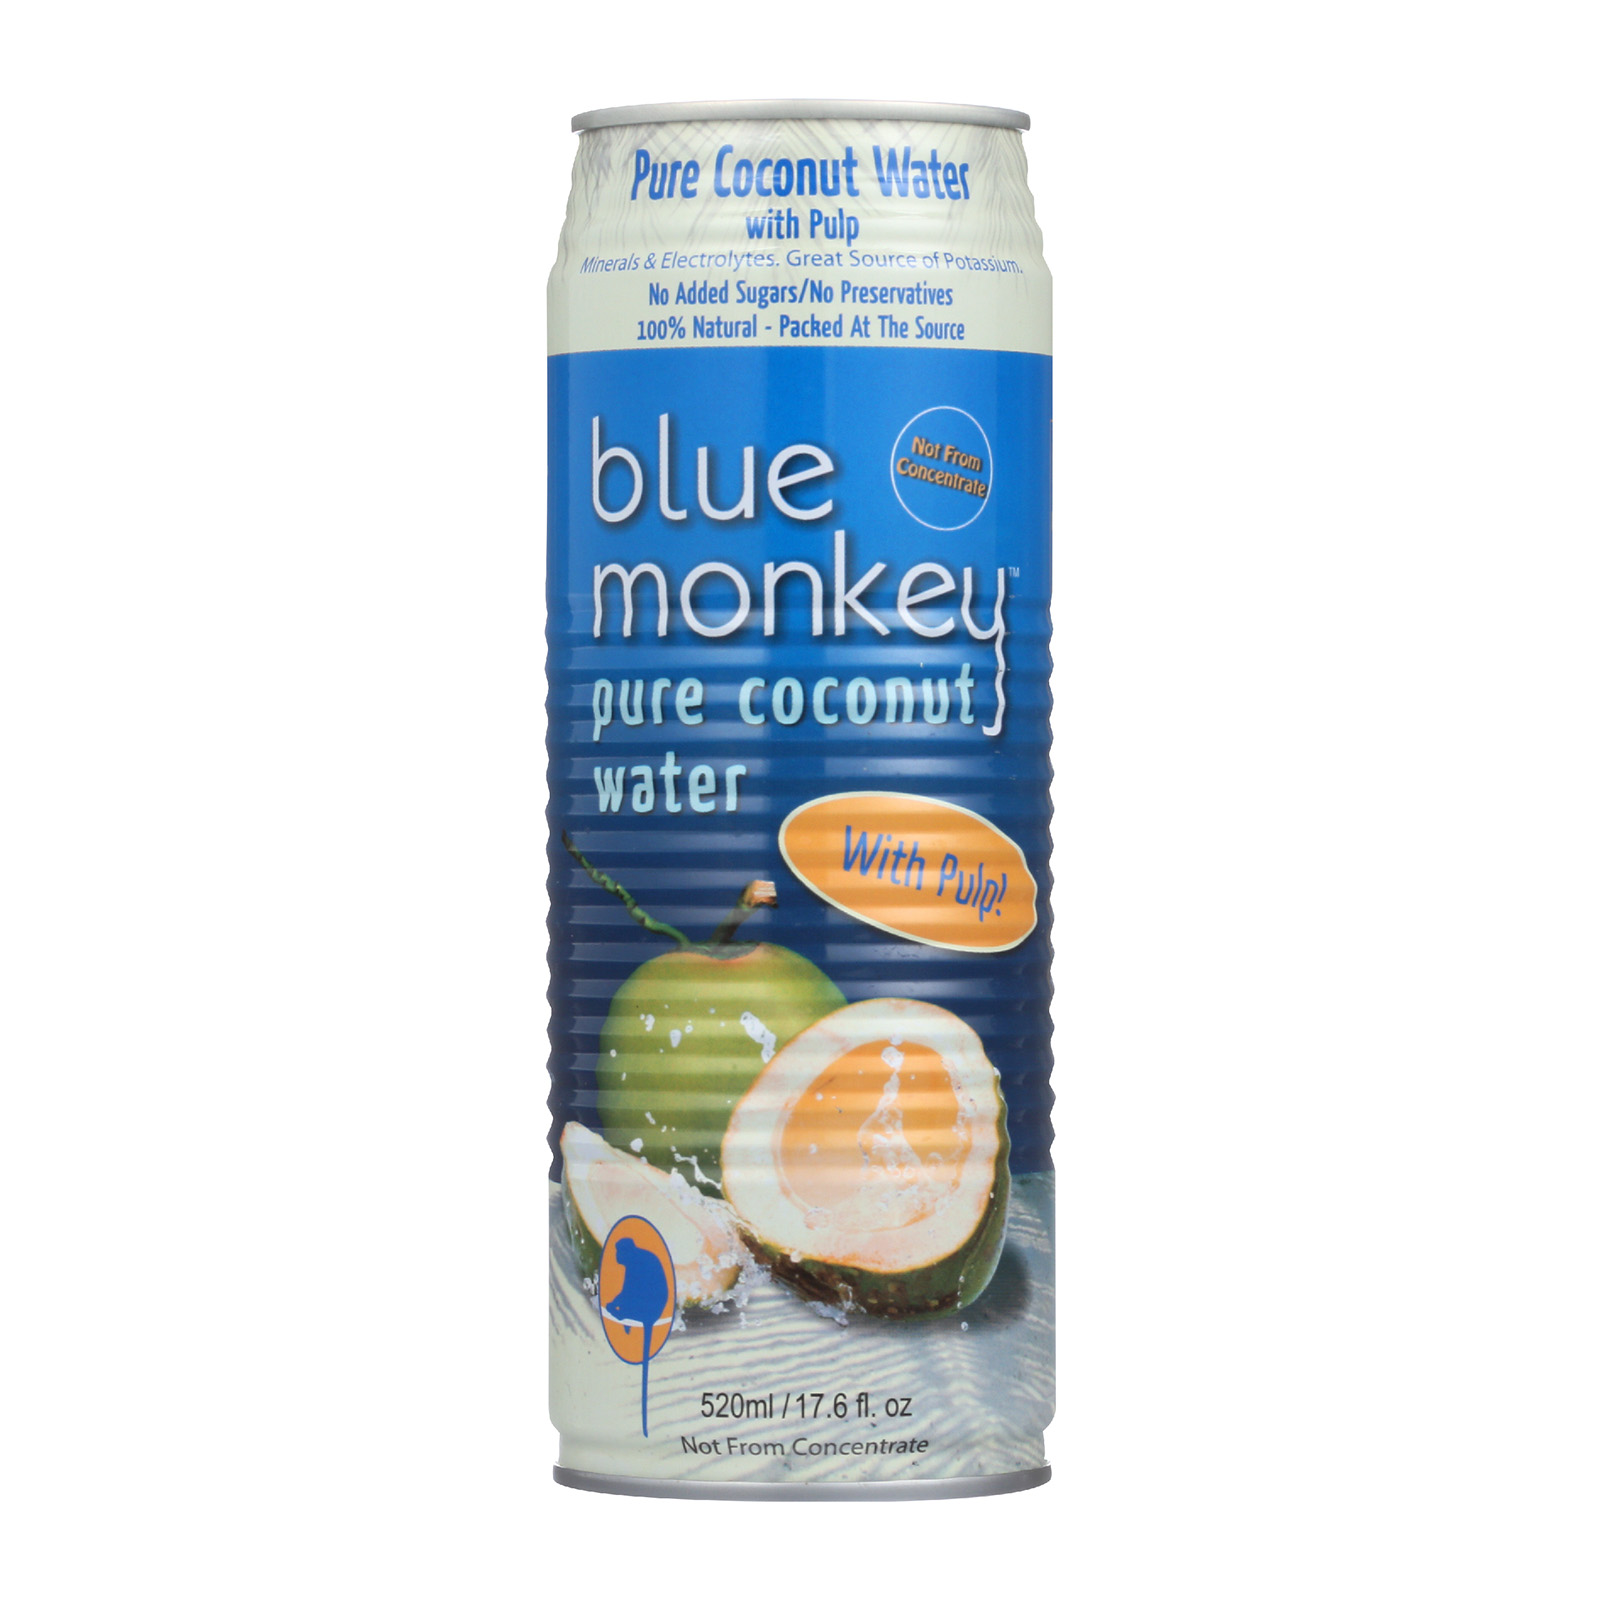 Blue Monkey Coconuts Gone Wild Coconut Water - Natural, with Pulp - Case of 24 - 17.6 oz.